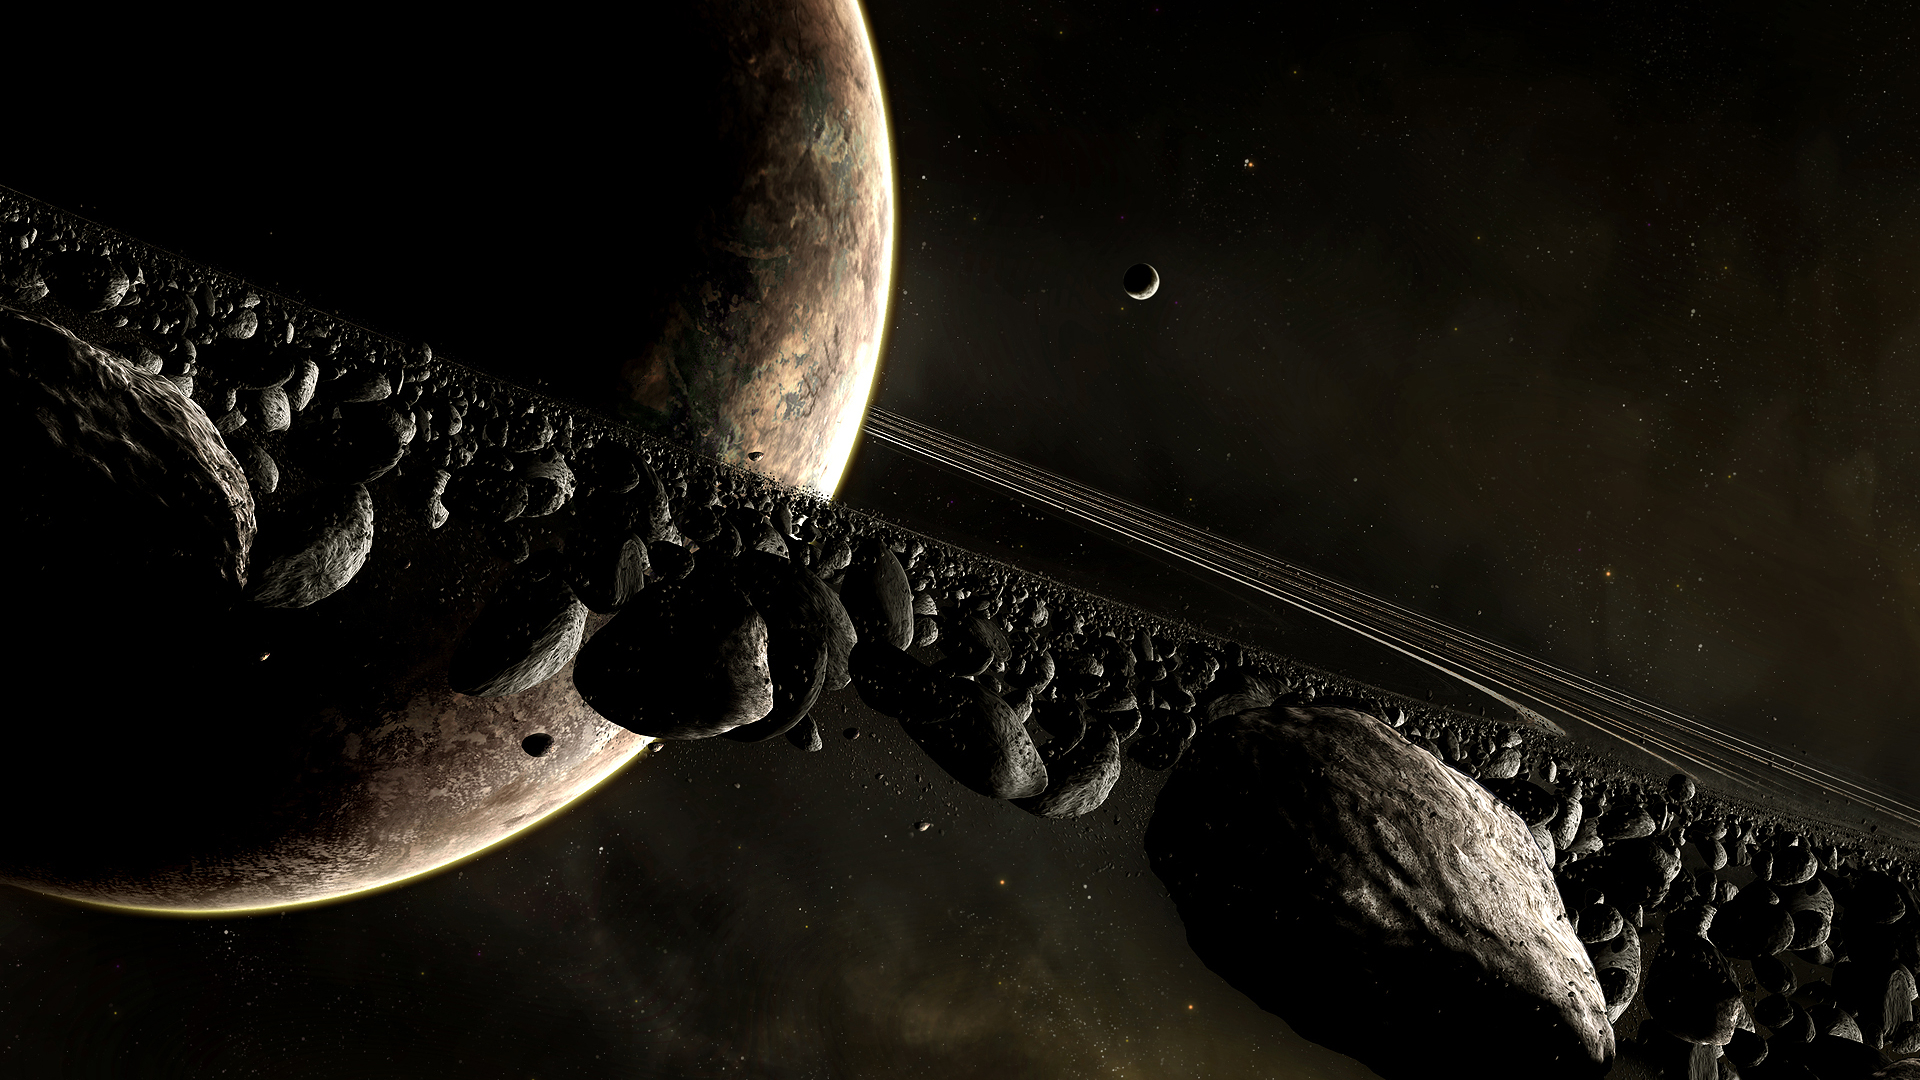 1920x1080 - Asteroid Wallpapers 8